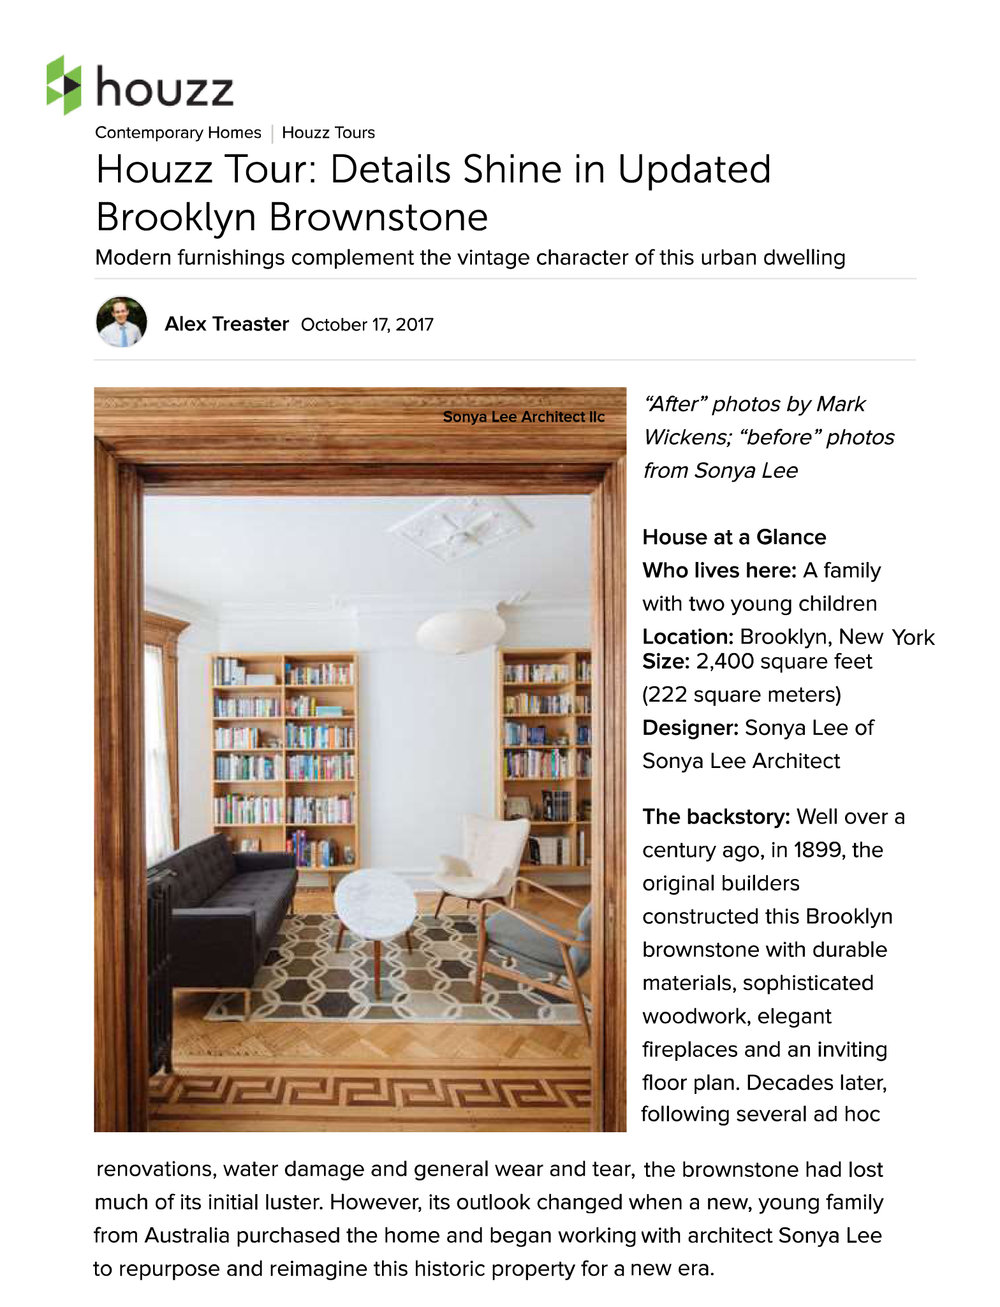 "Houzz Oct 2017 ""Details shine in updated Brooklyn Brownstone: After decades following several ad hoc renovations, water damage and general wear and tear, teh brownstone had lost much of its initial luster. However its outlook changed when a new young family from Australia purchased the home and began working with architect Sonya Lee to repurpose and reimagine this historic property for a new era."""